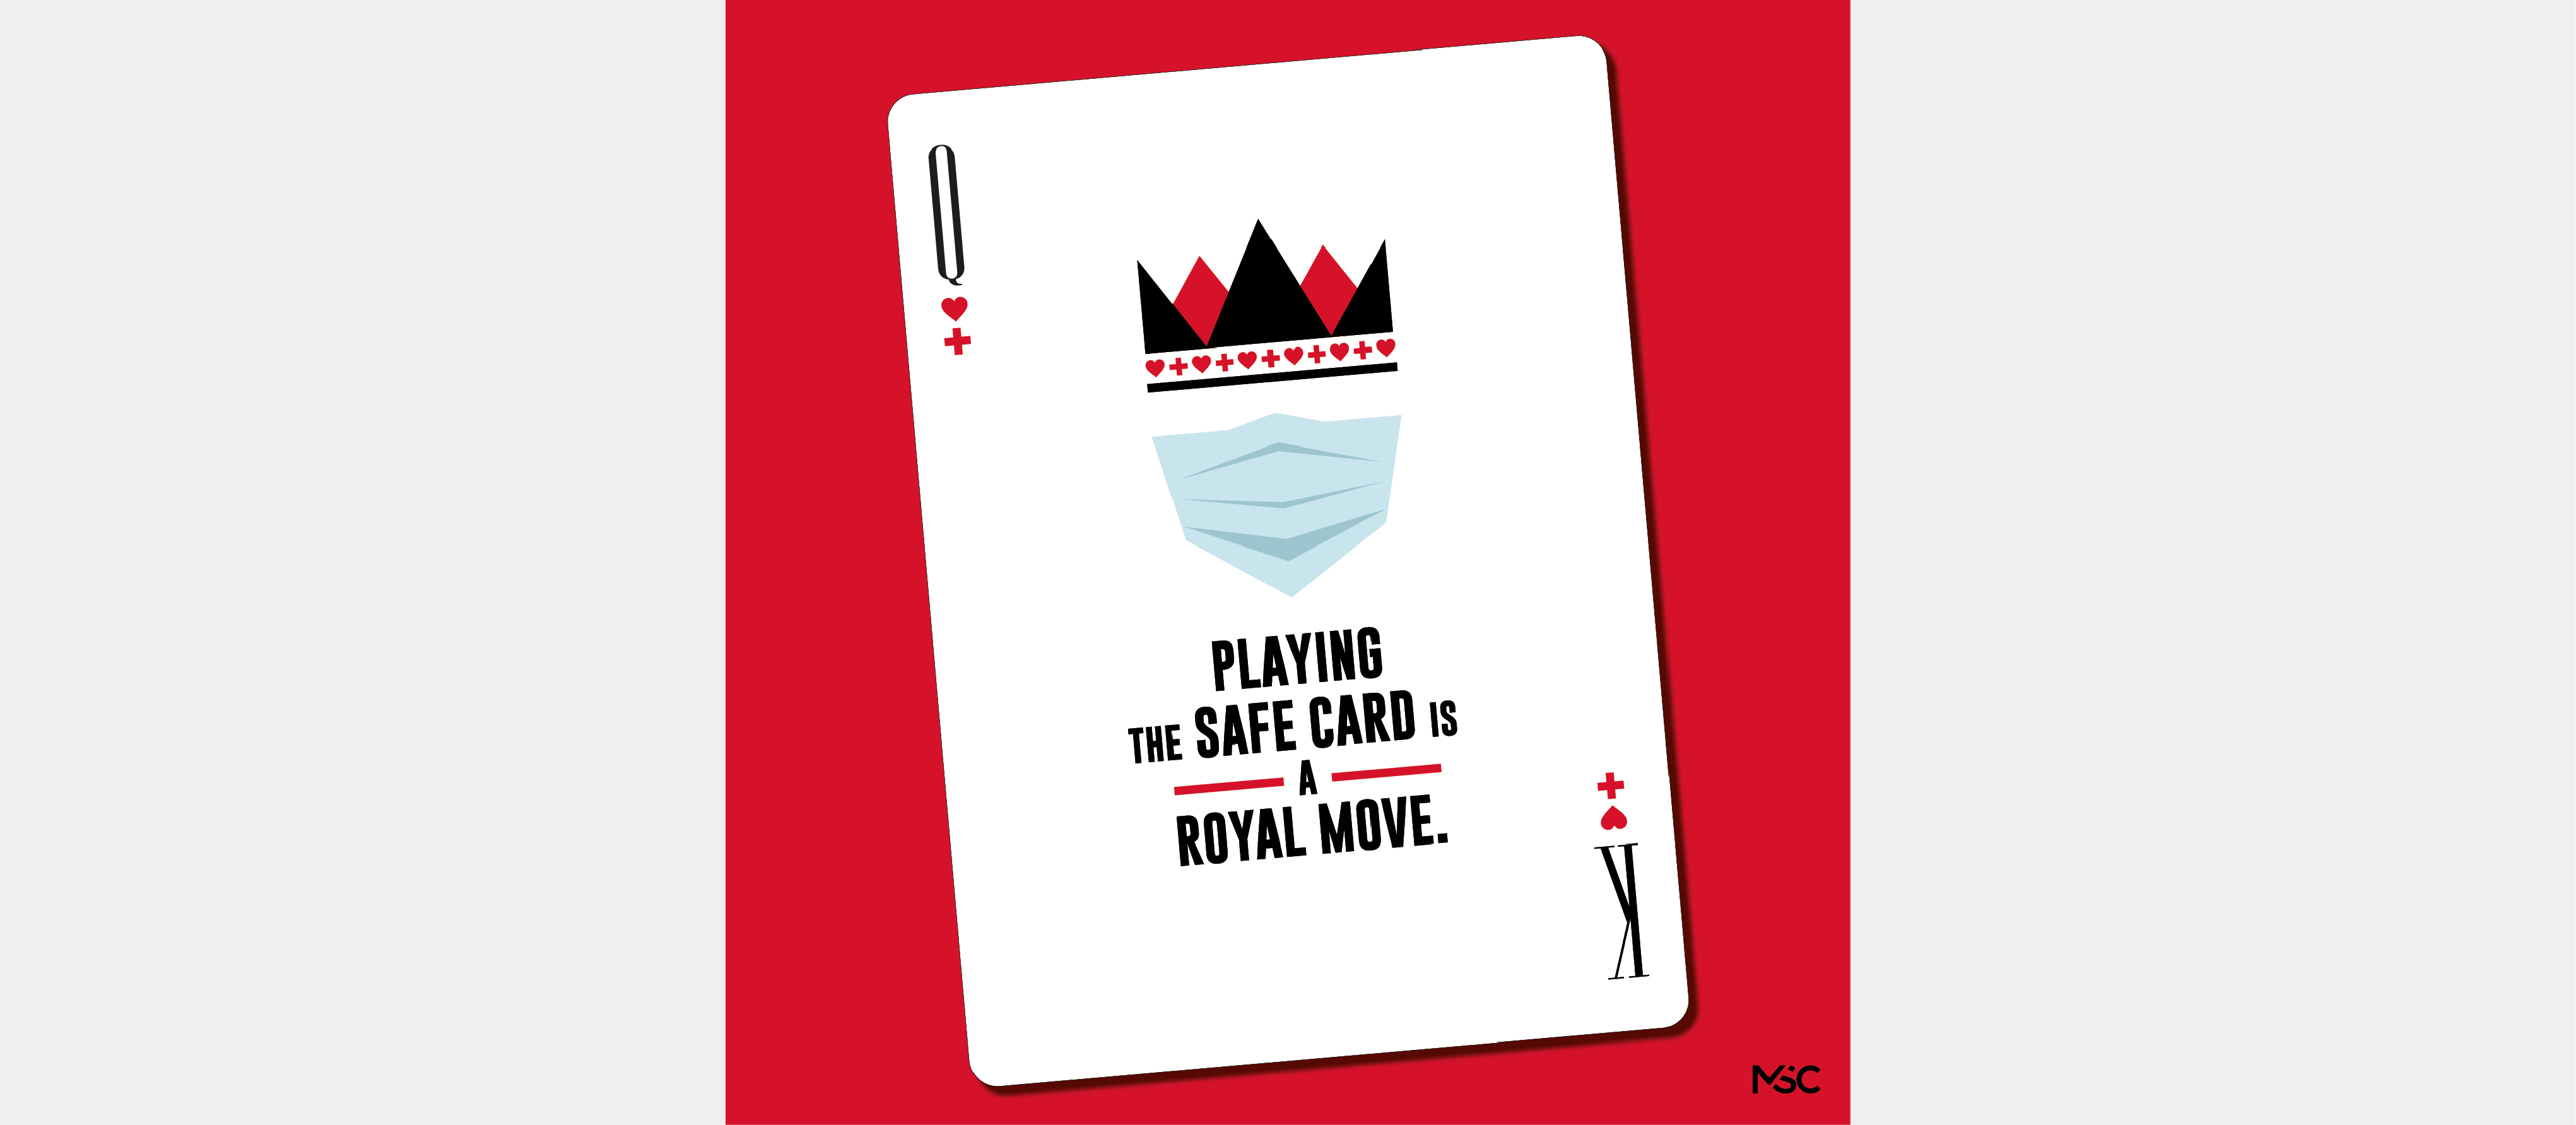 The Royal Move